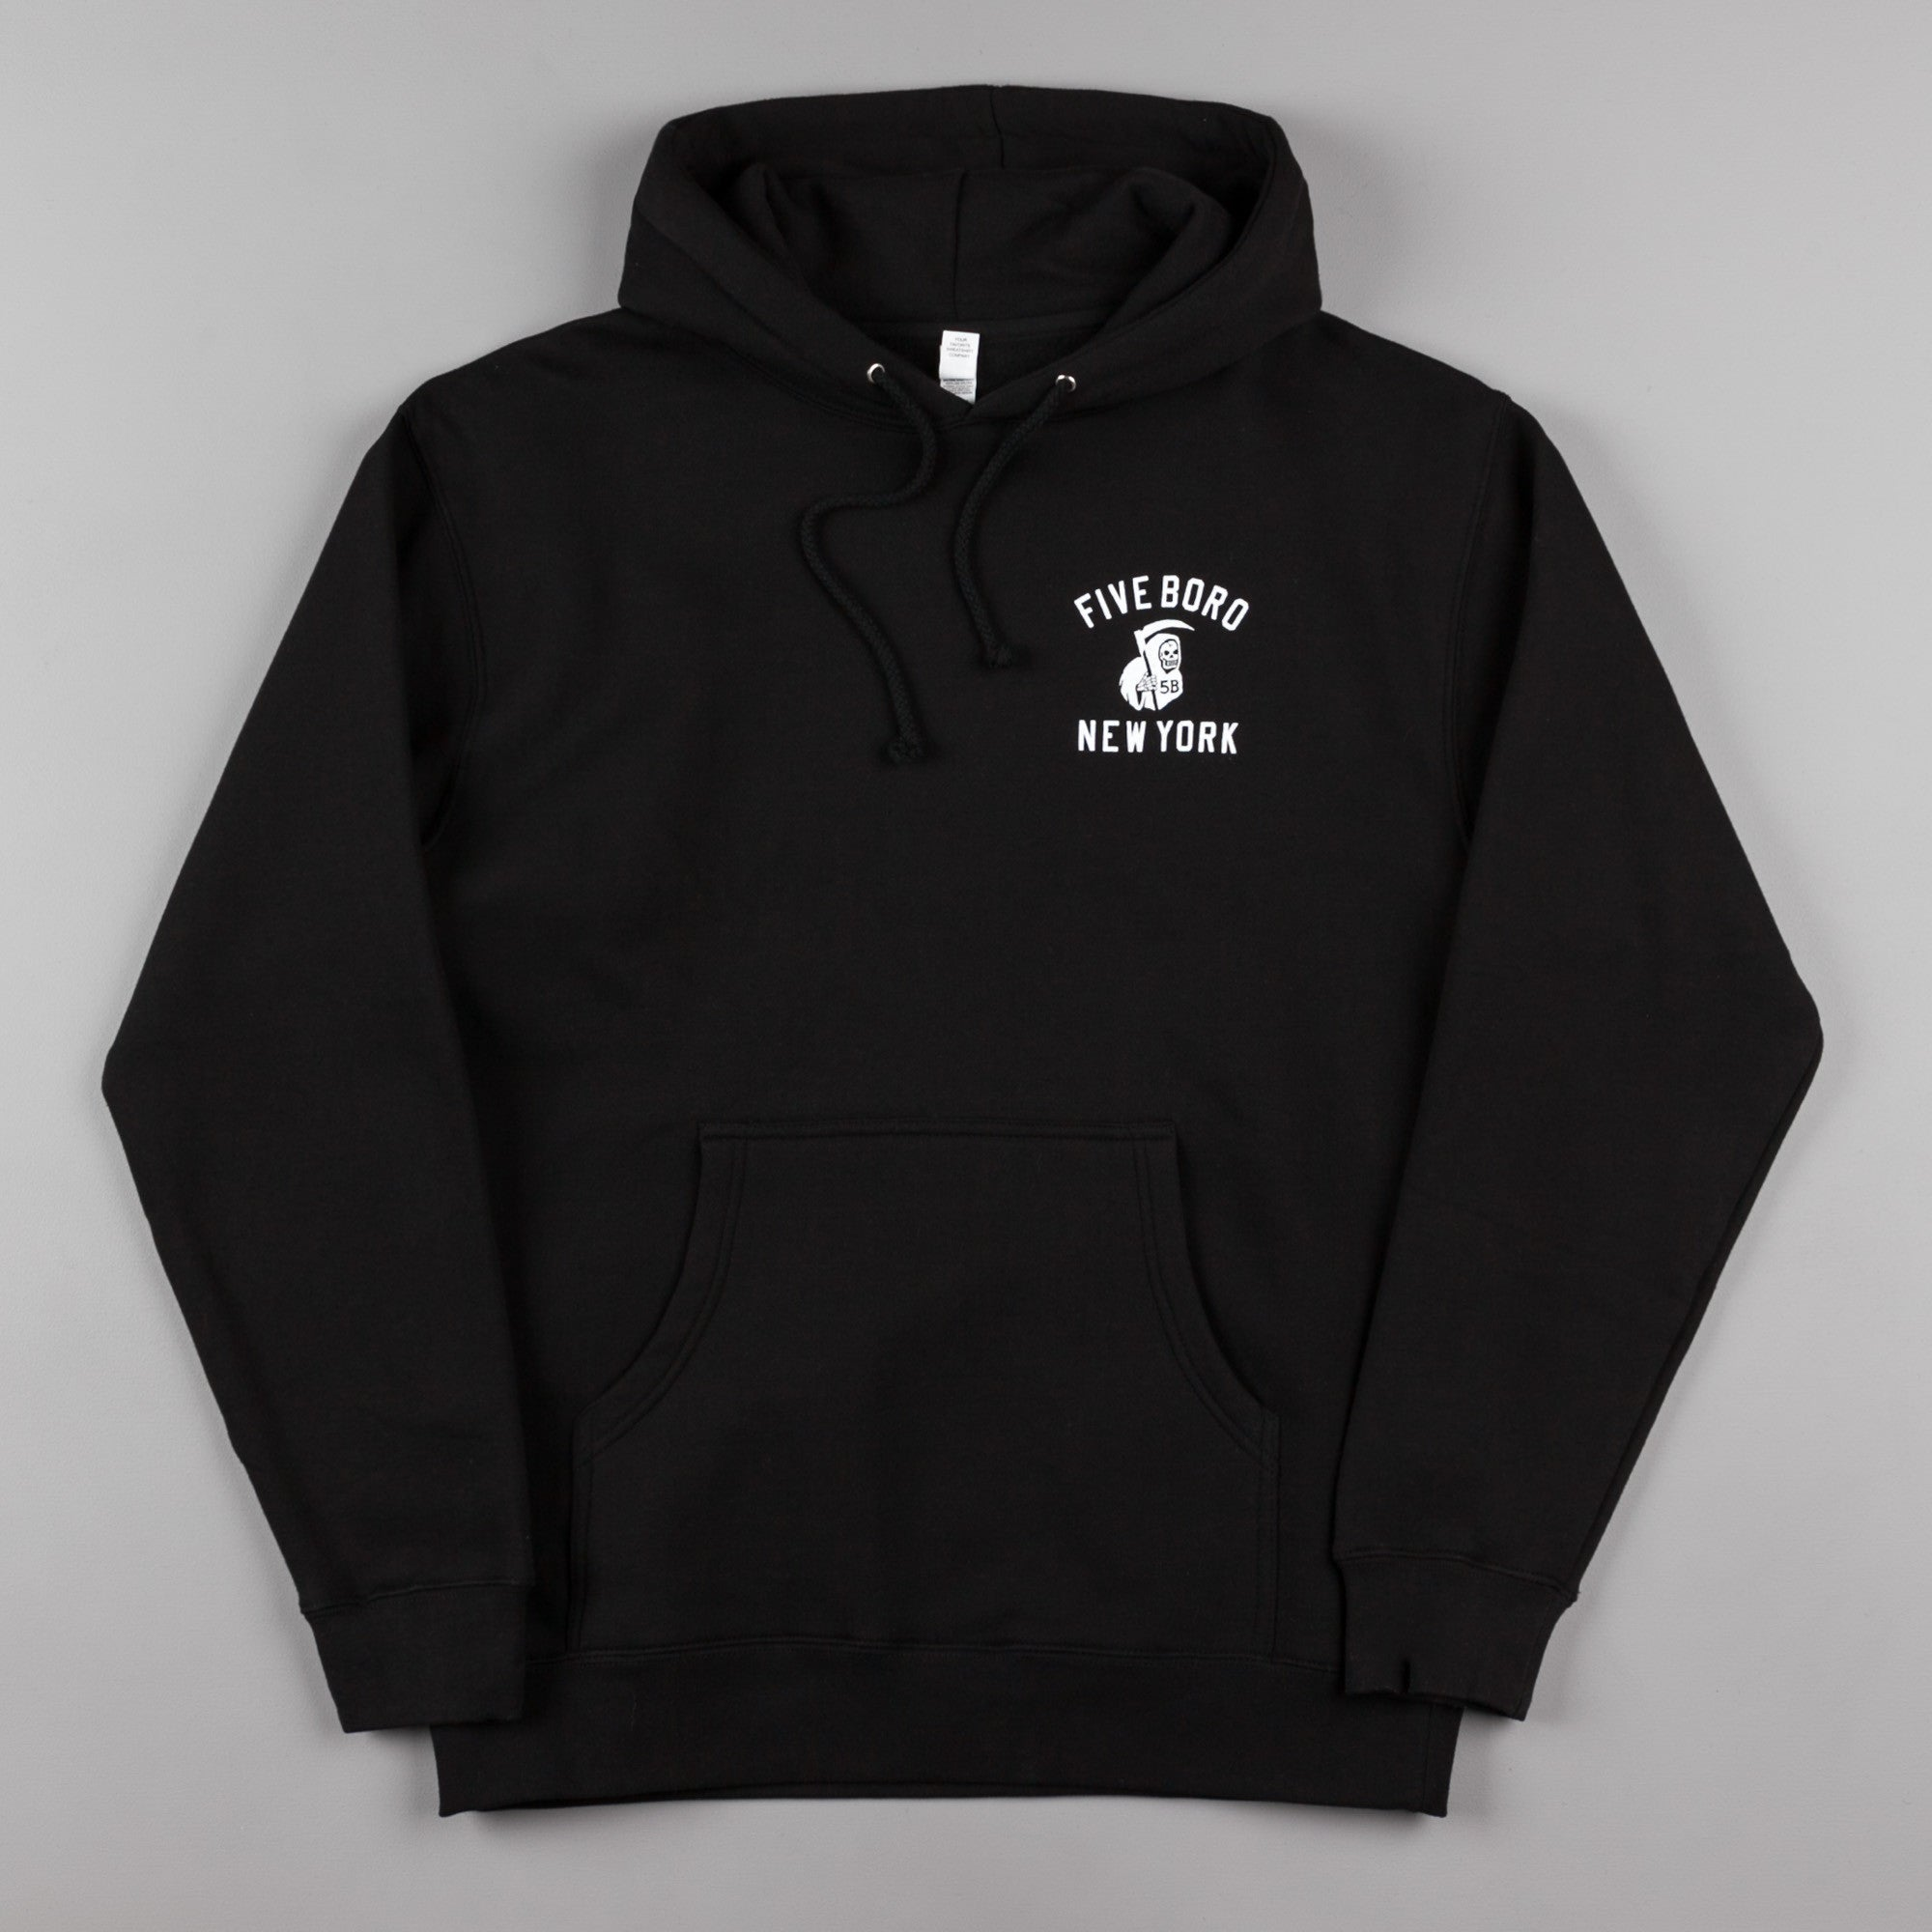 5Boro Reaper Hooded Sweatshirt - Black